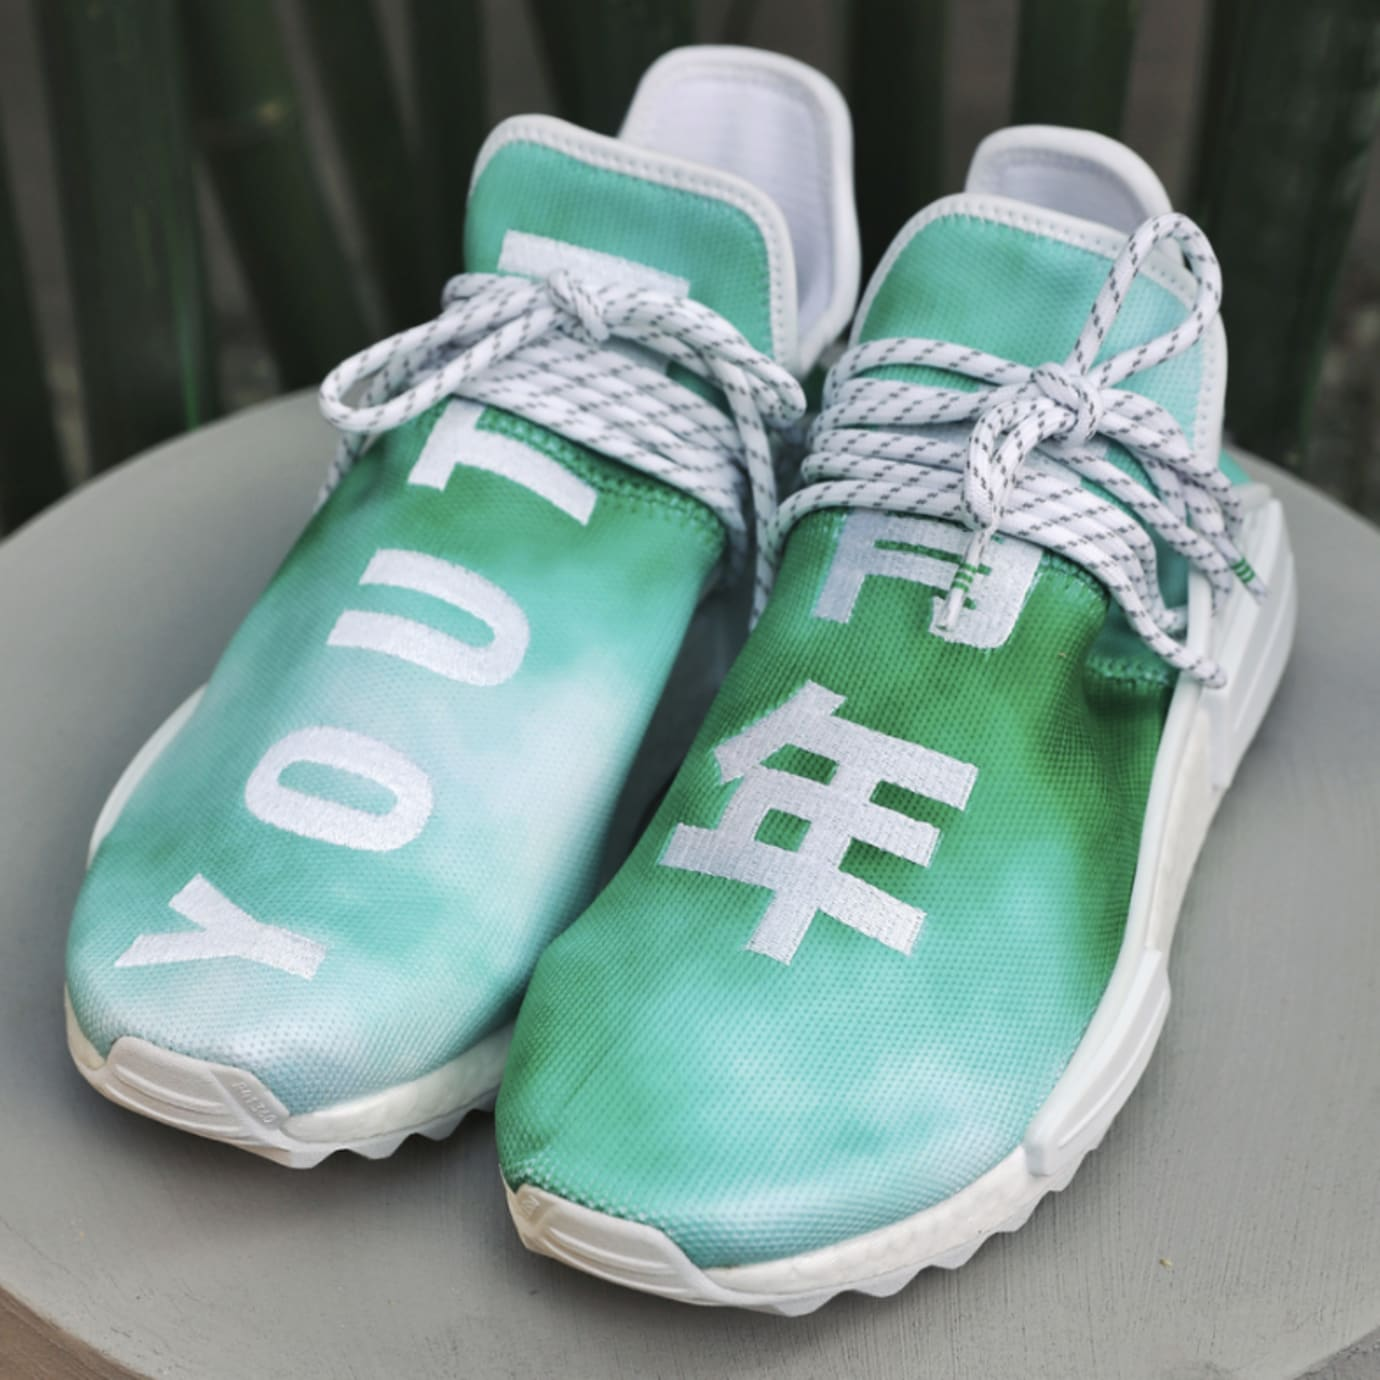 Pharrell x Adidas NMD Hu China Pack Sole Collector  Sole Collector